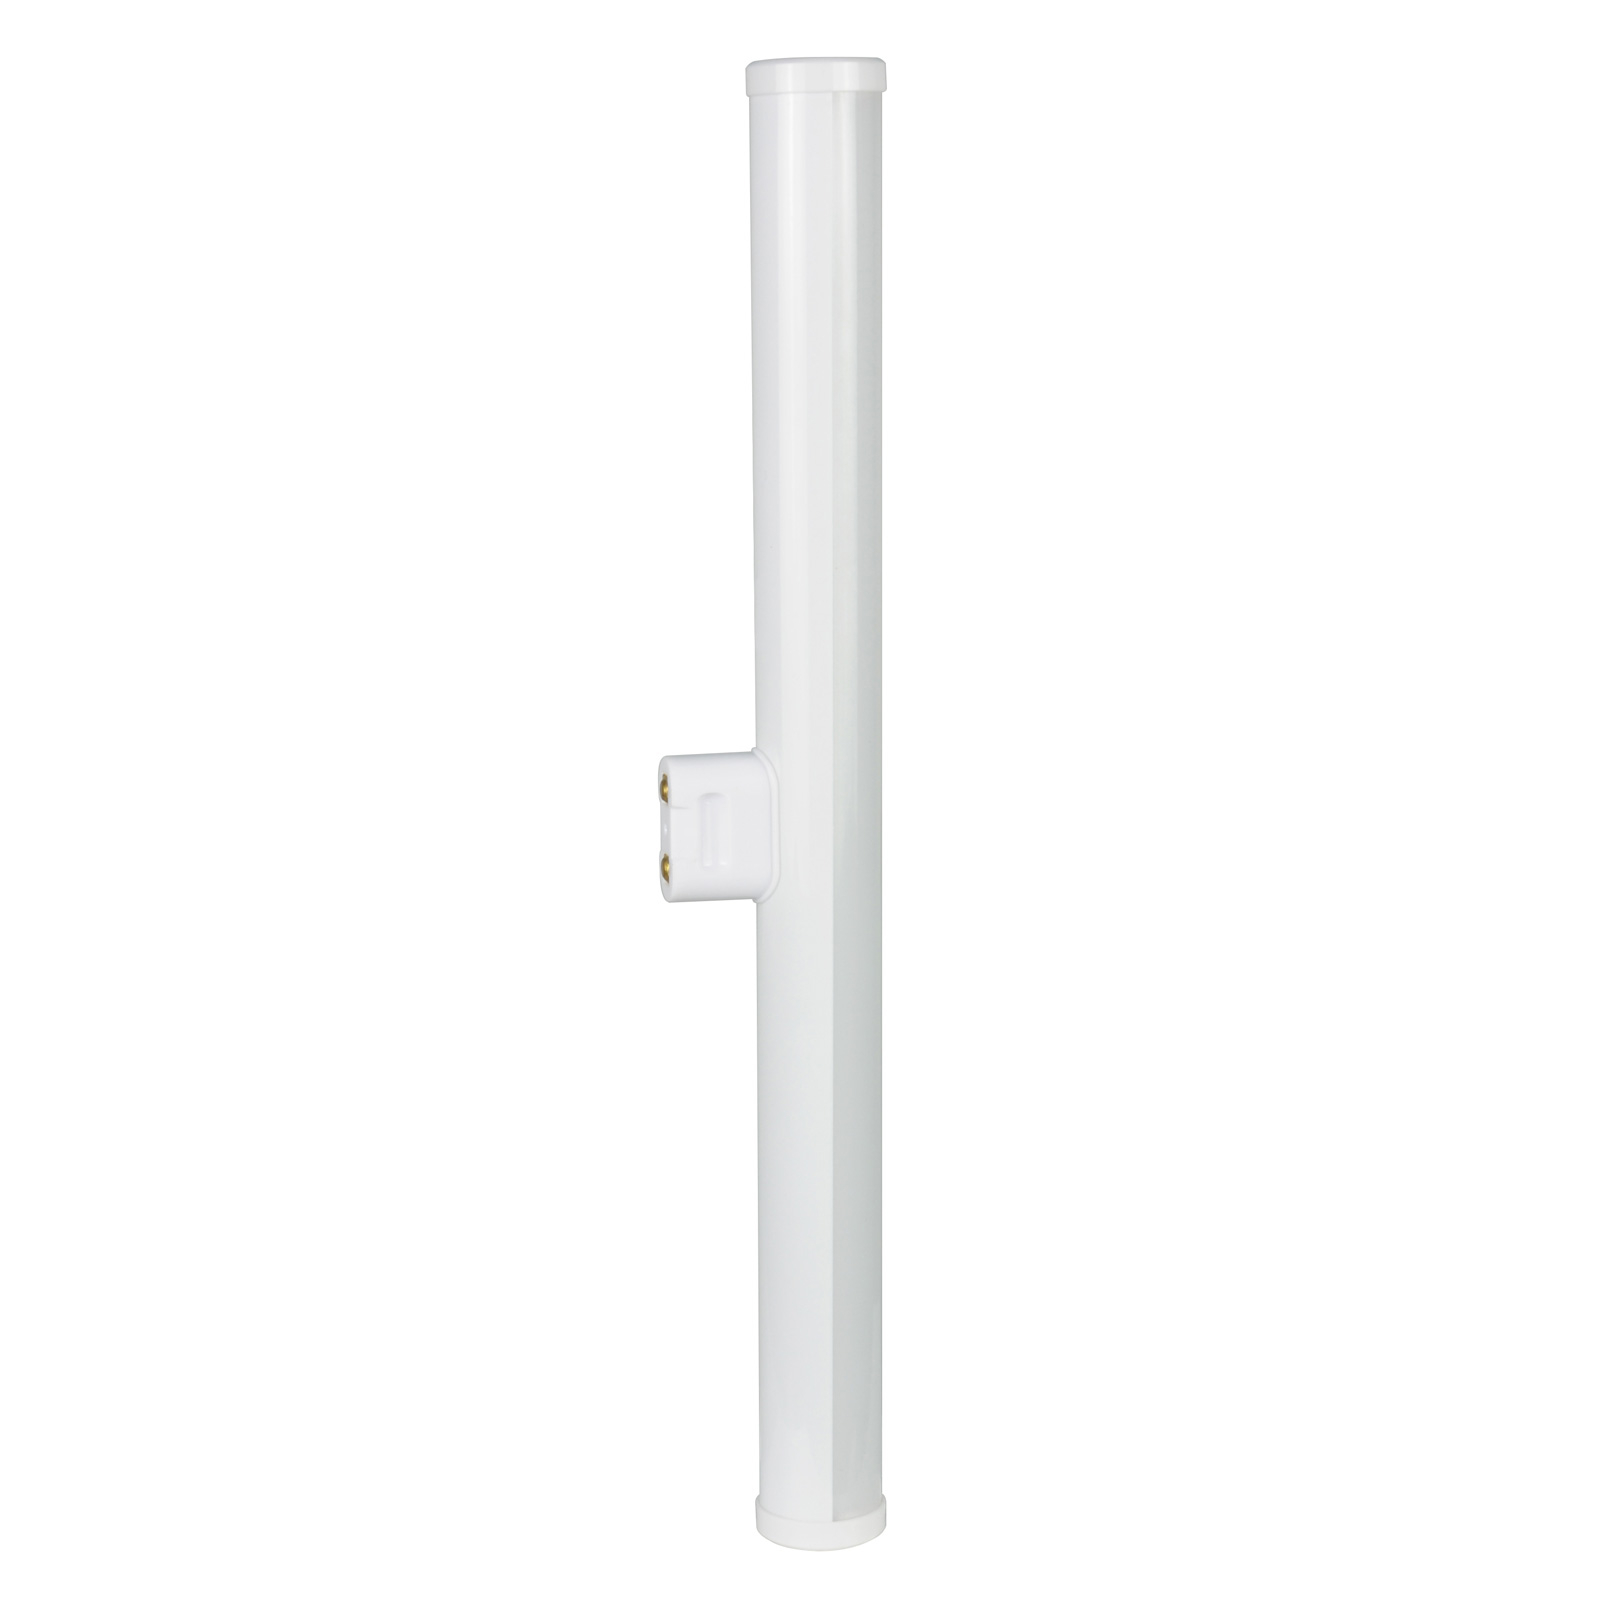 Ampoule tubulaire LED S14d 3,5 W 827 1 culot 300mm